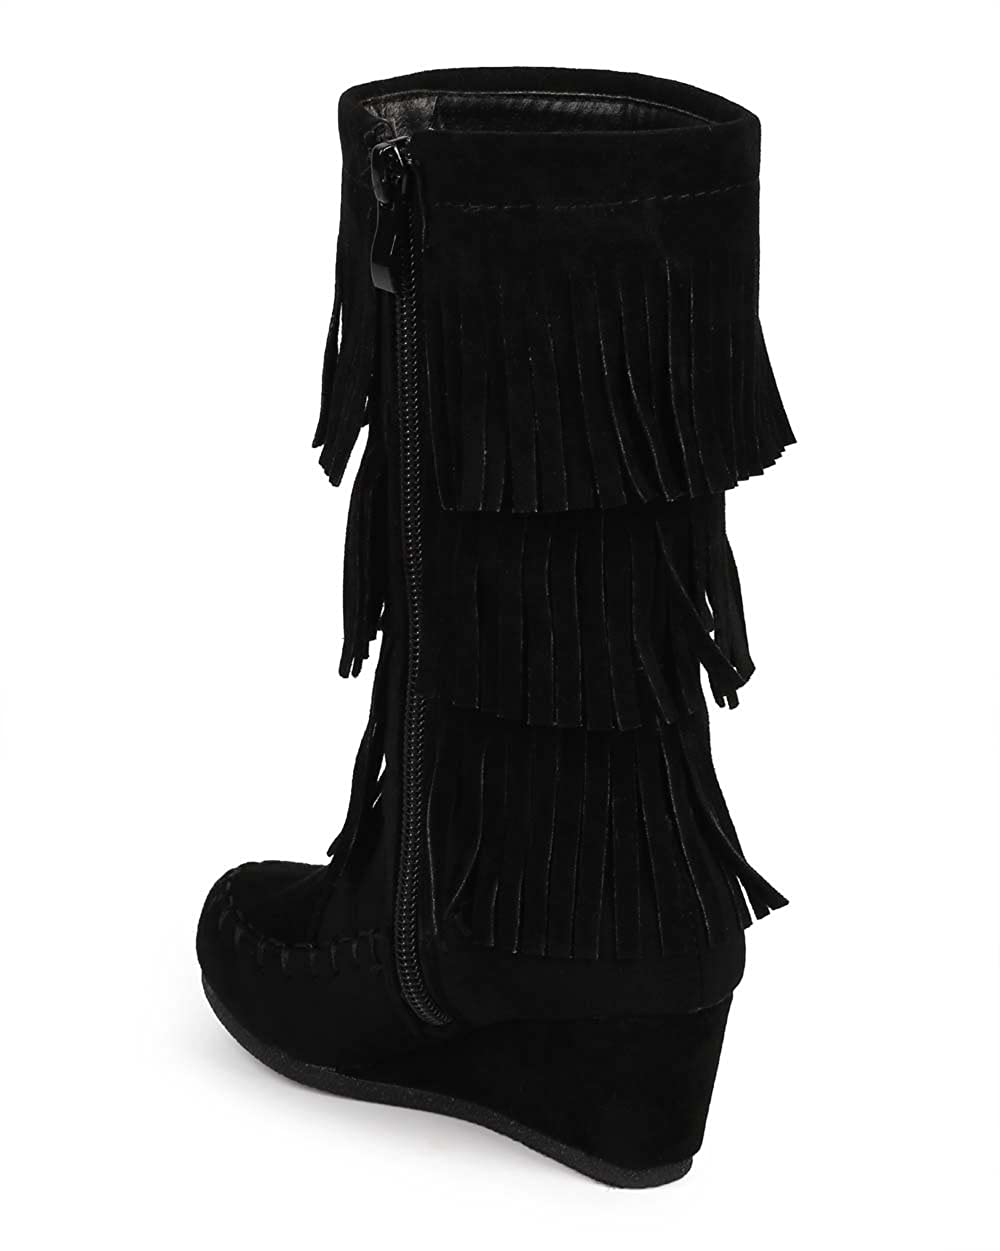 Youth Girl/'s Kid/'s Cute Fringe Flat Wedge Heel Zipper Boots Shoes Size 9-4 NEW